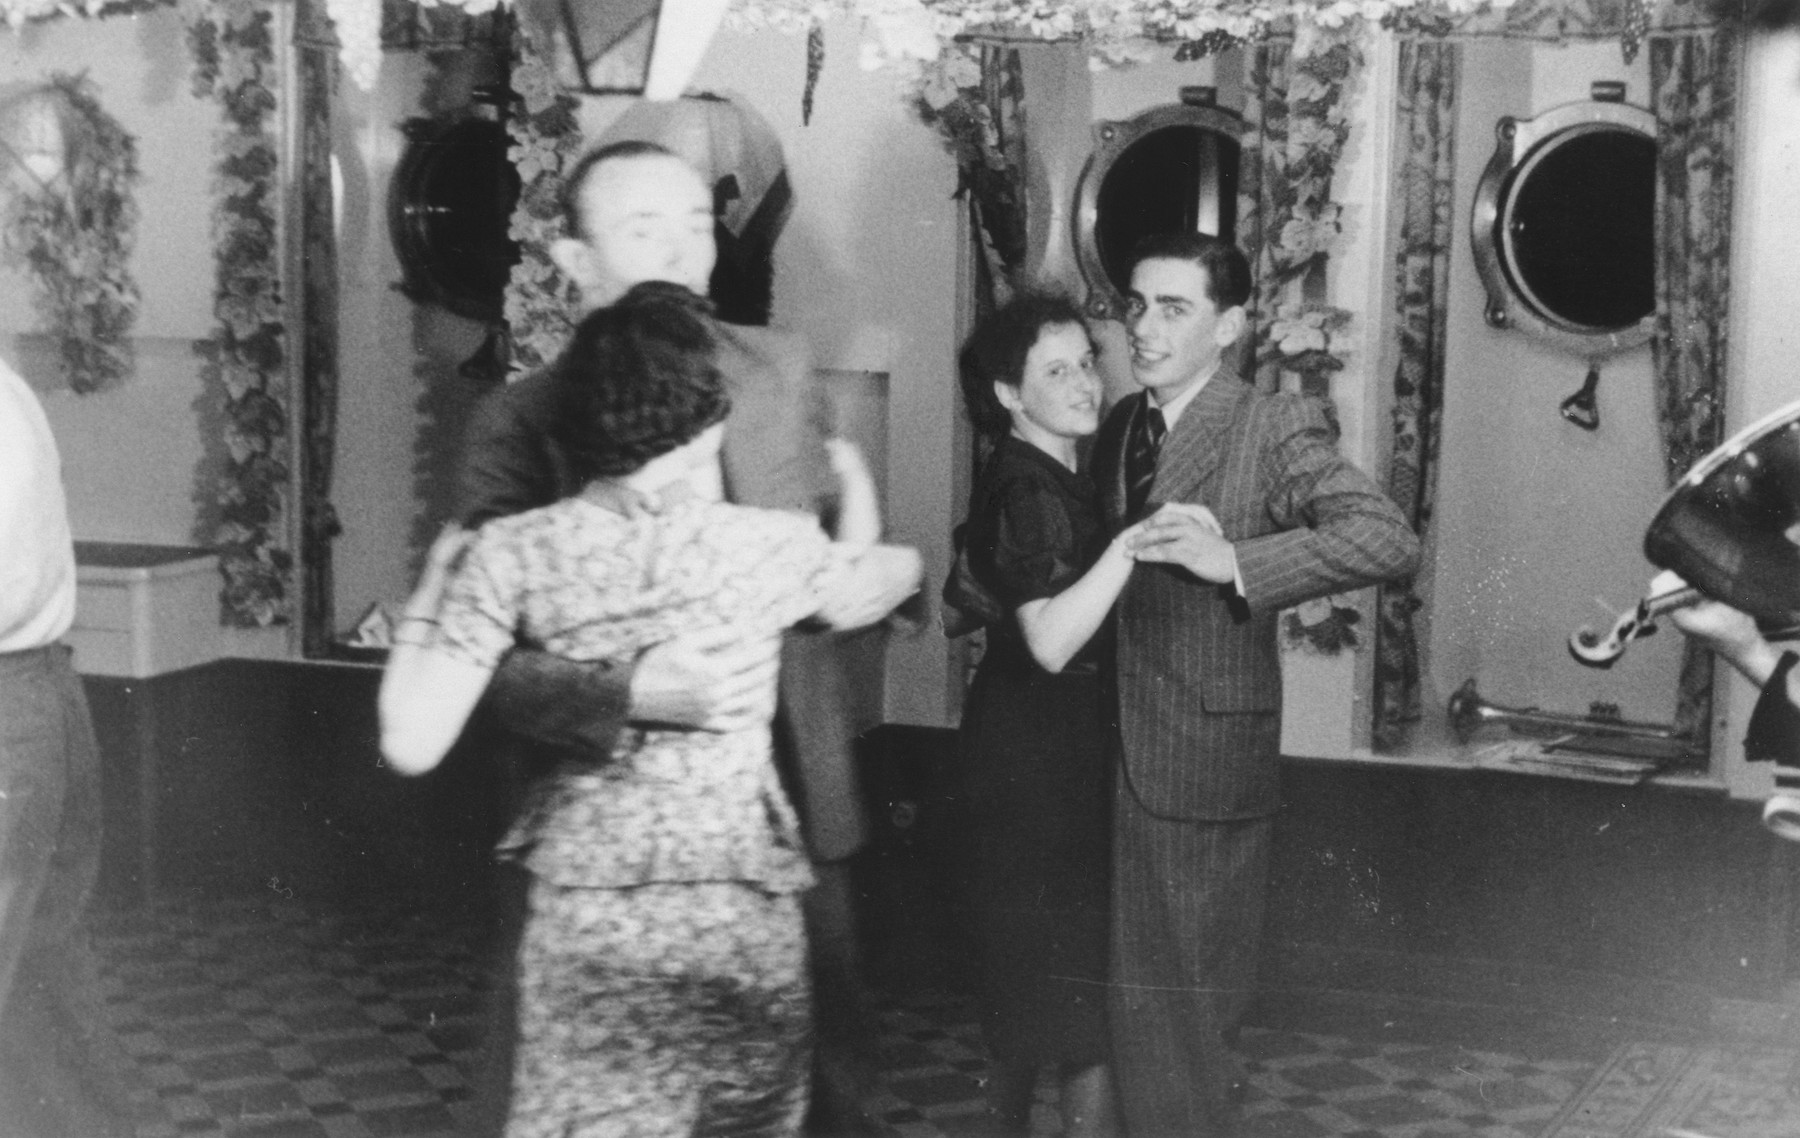 Jewish refugees on board the MS St. Louis dance in the ballroom.  Pictured on the right are Fritz Buff and Vera Hess.